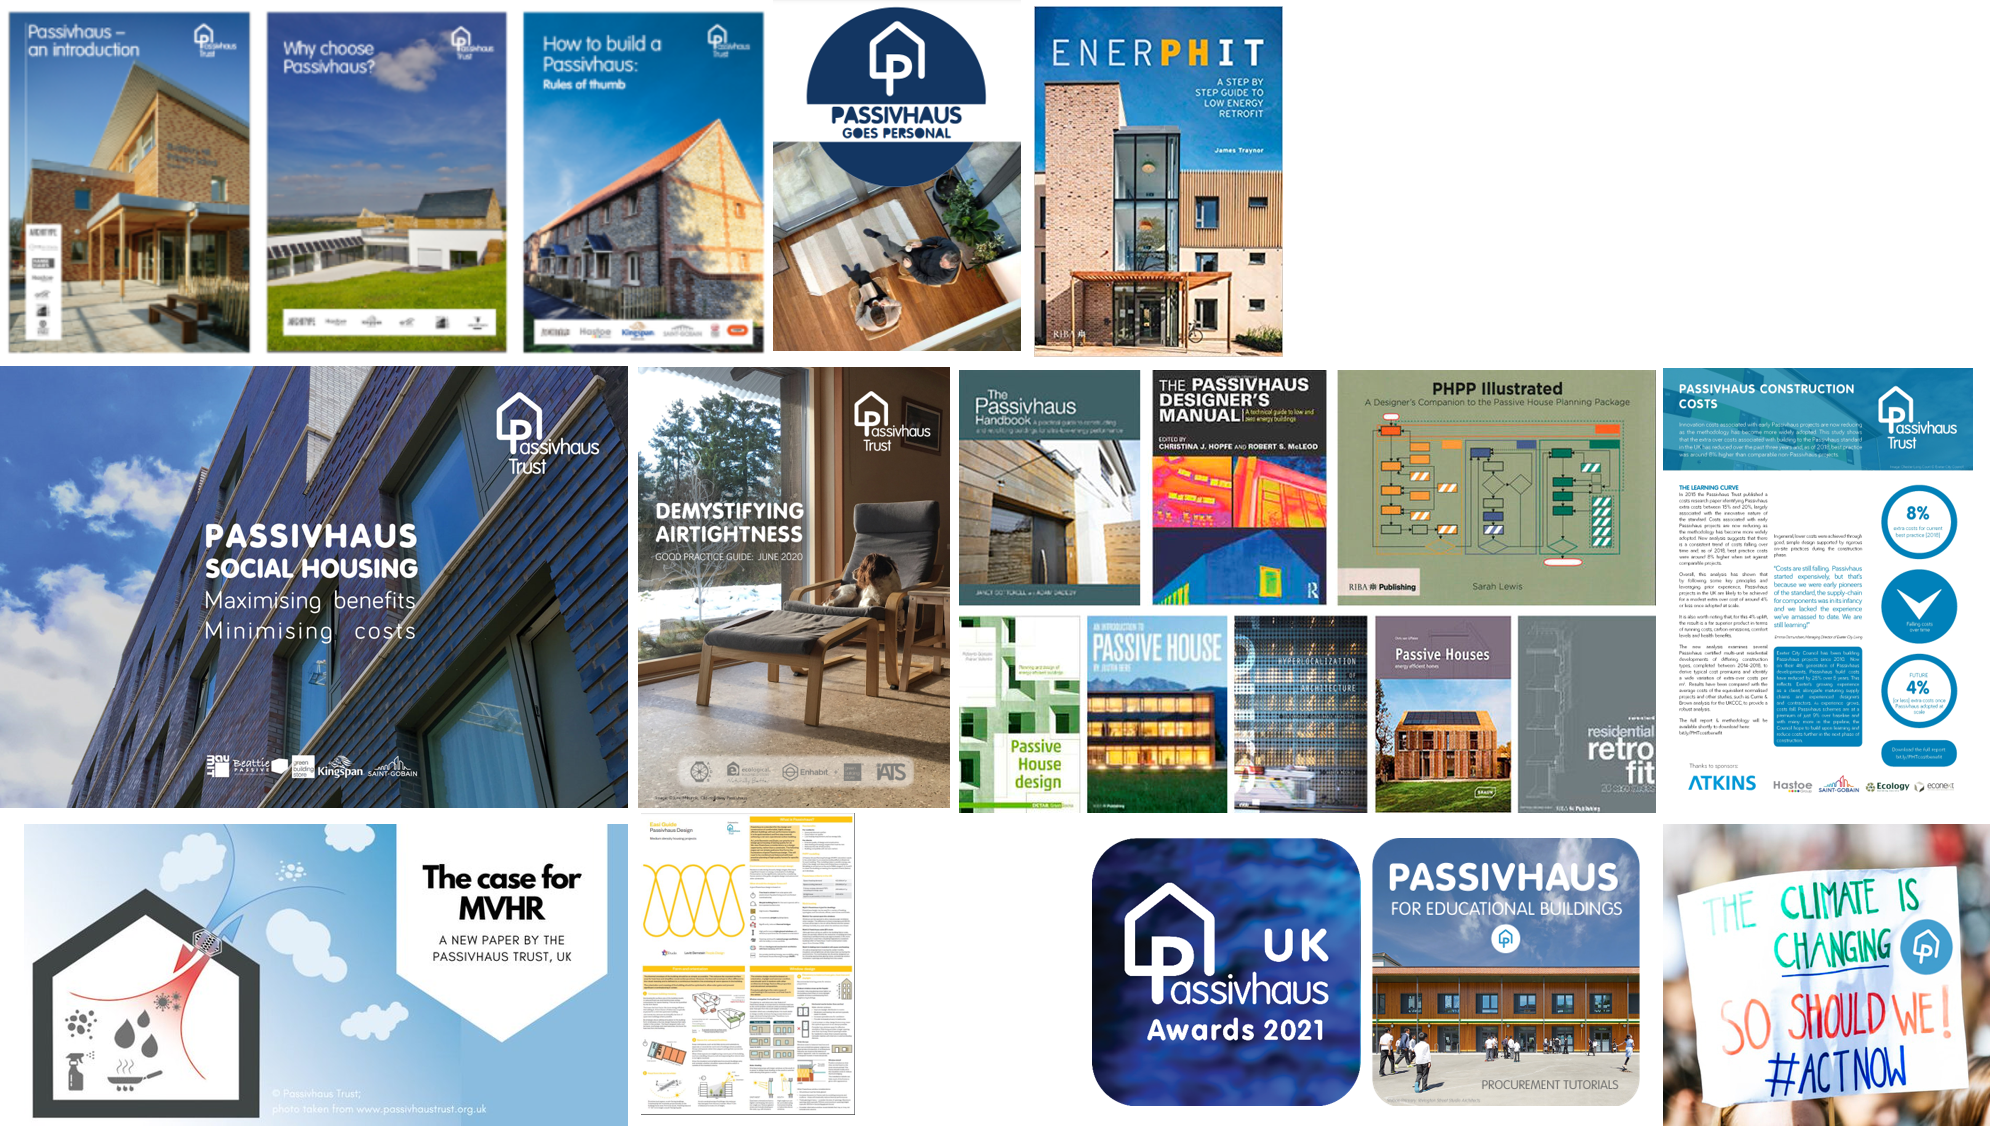 Passivhaus Resources